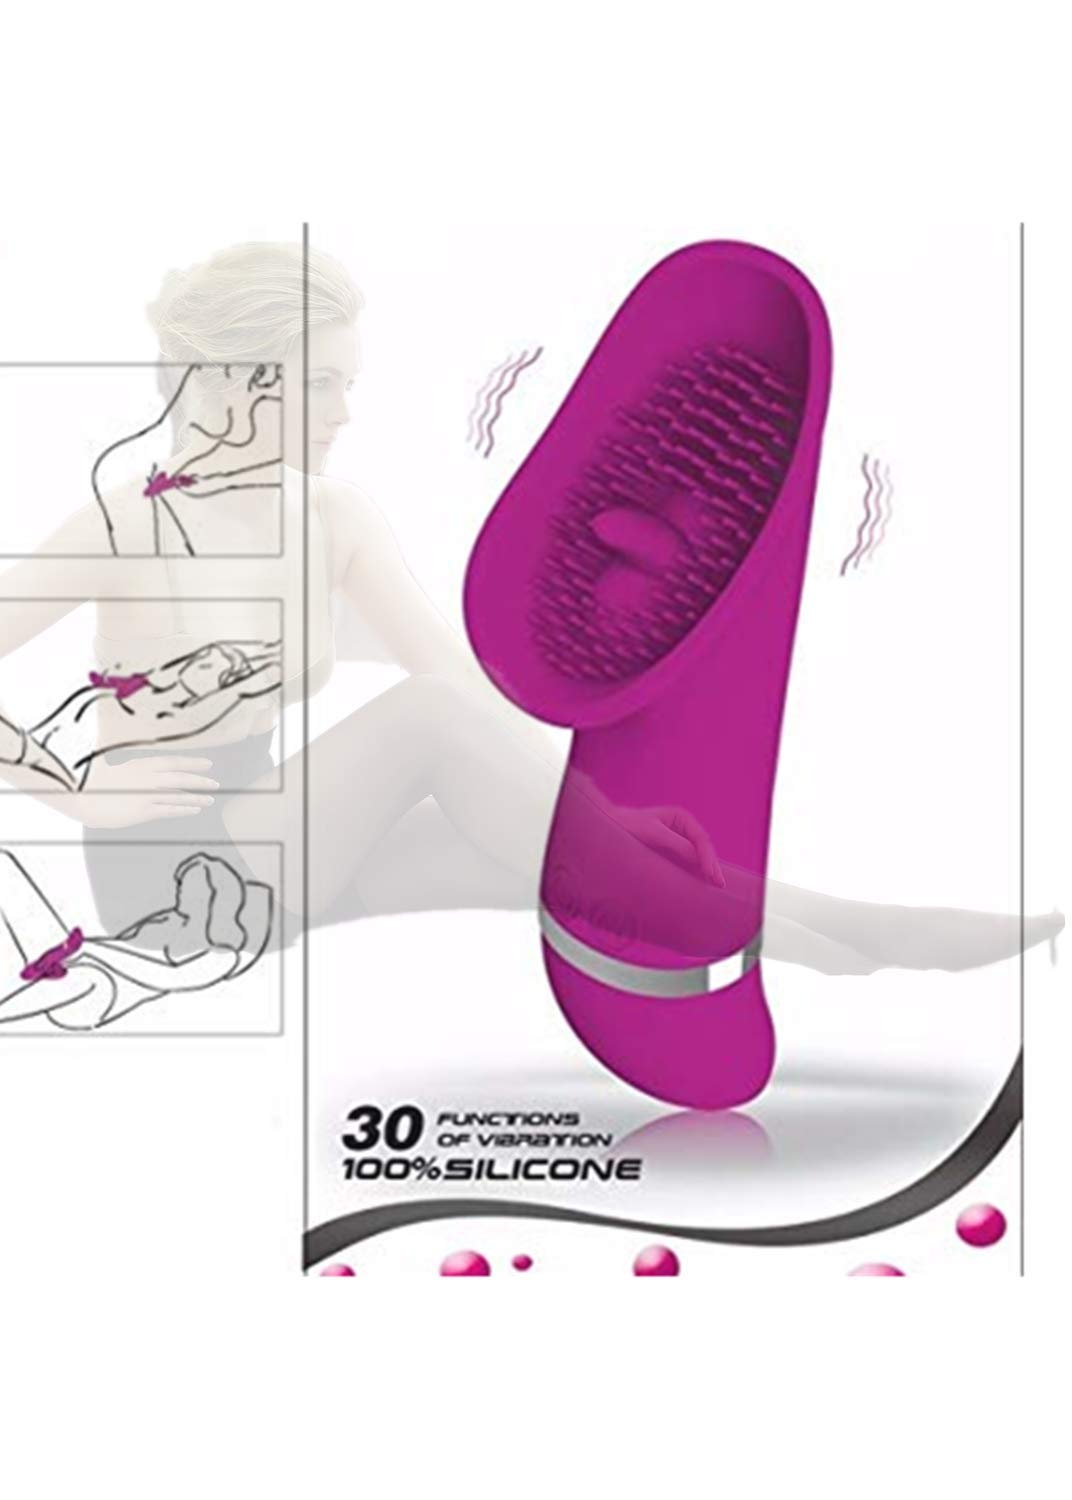 Female Clitoral Massager Stimulating Orgasm Simulates Tongue Licking to Improve Female Desire and Couple's Flirting